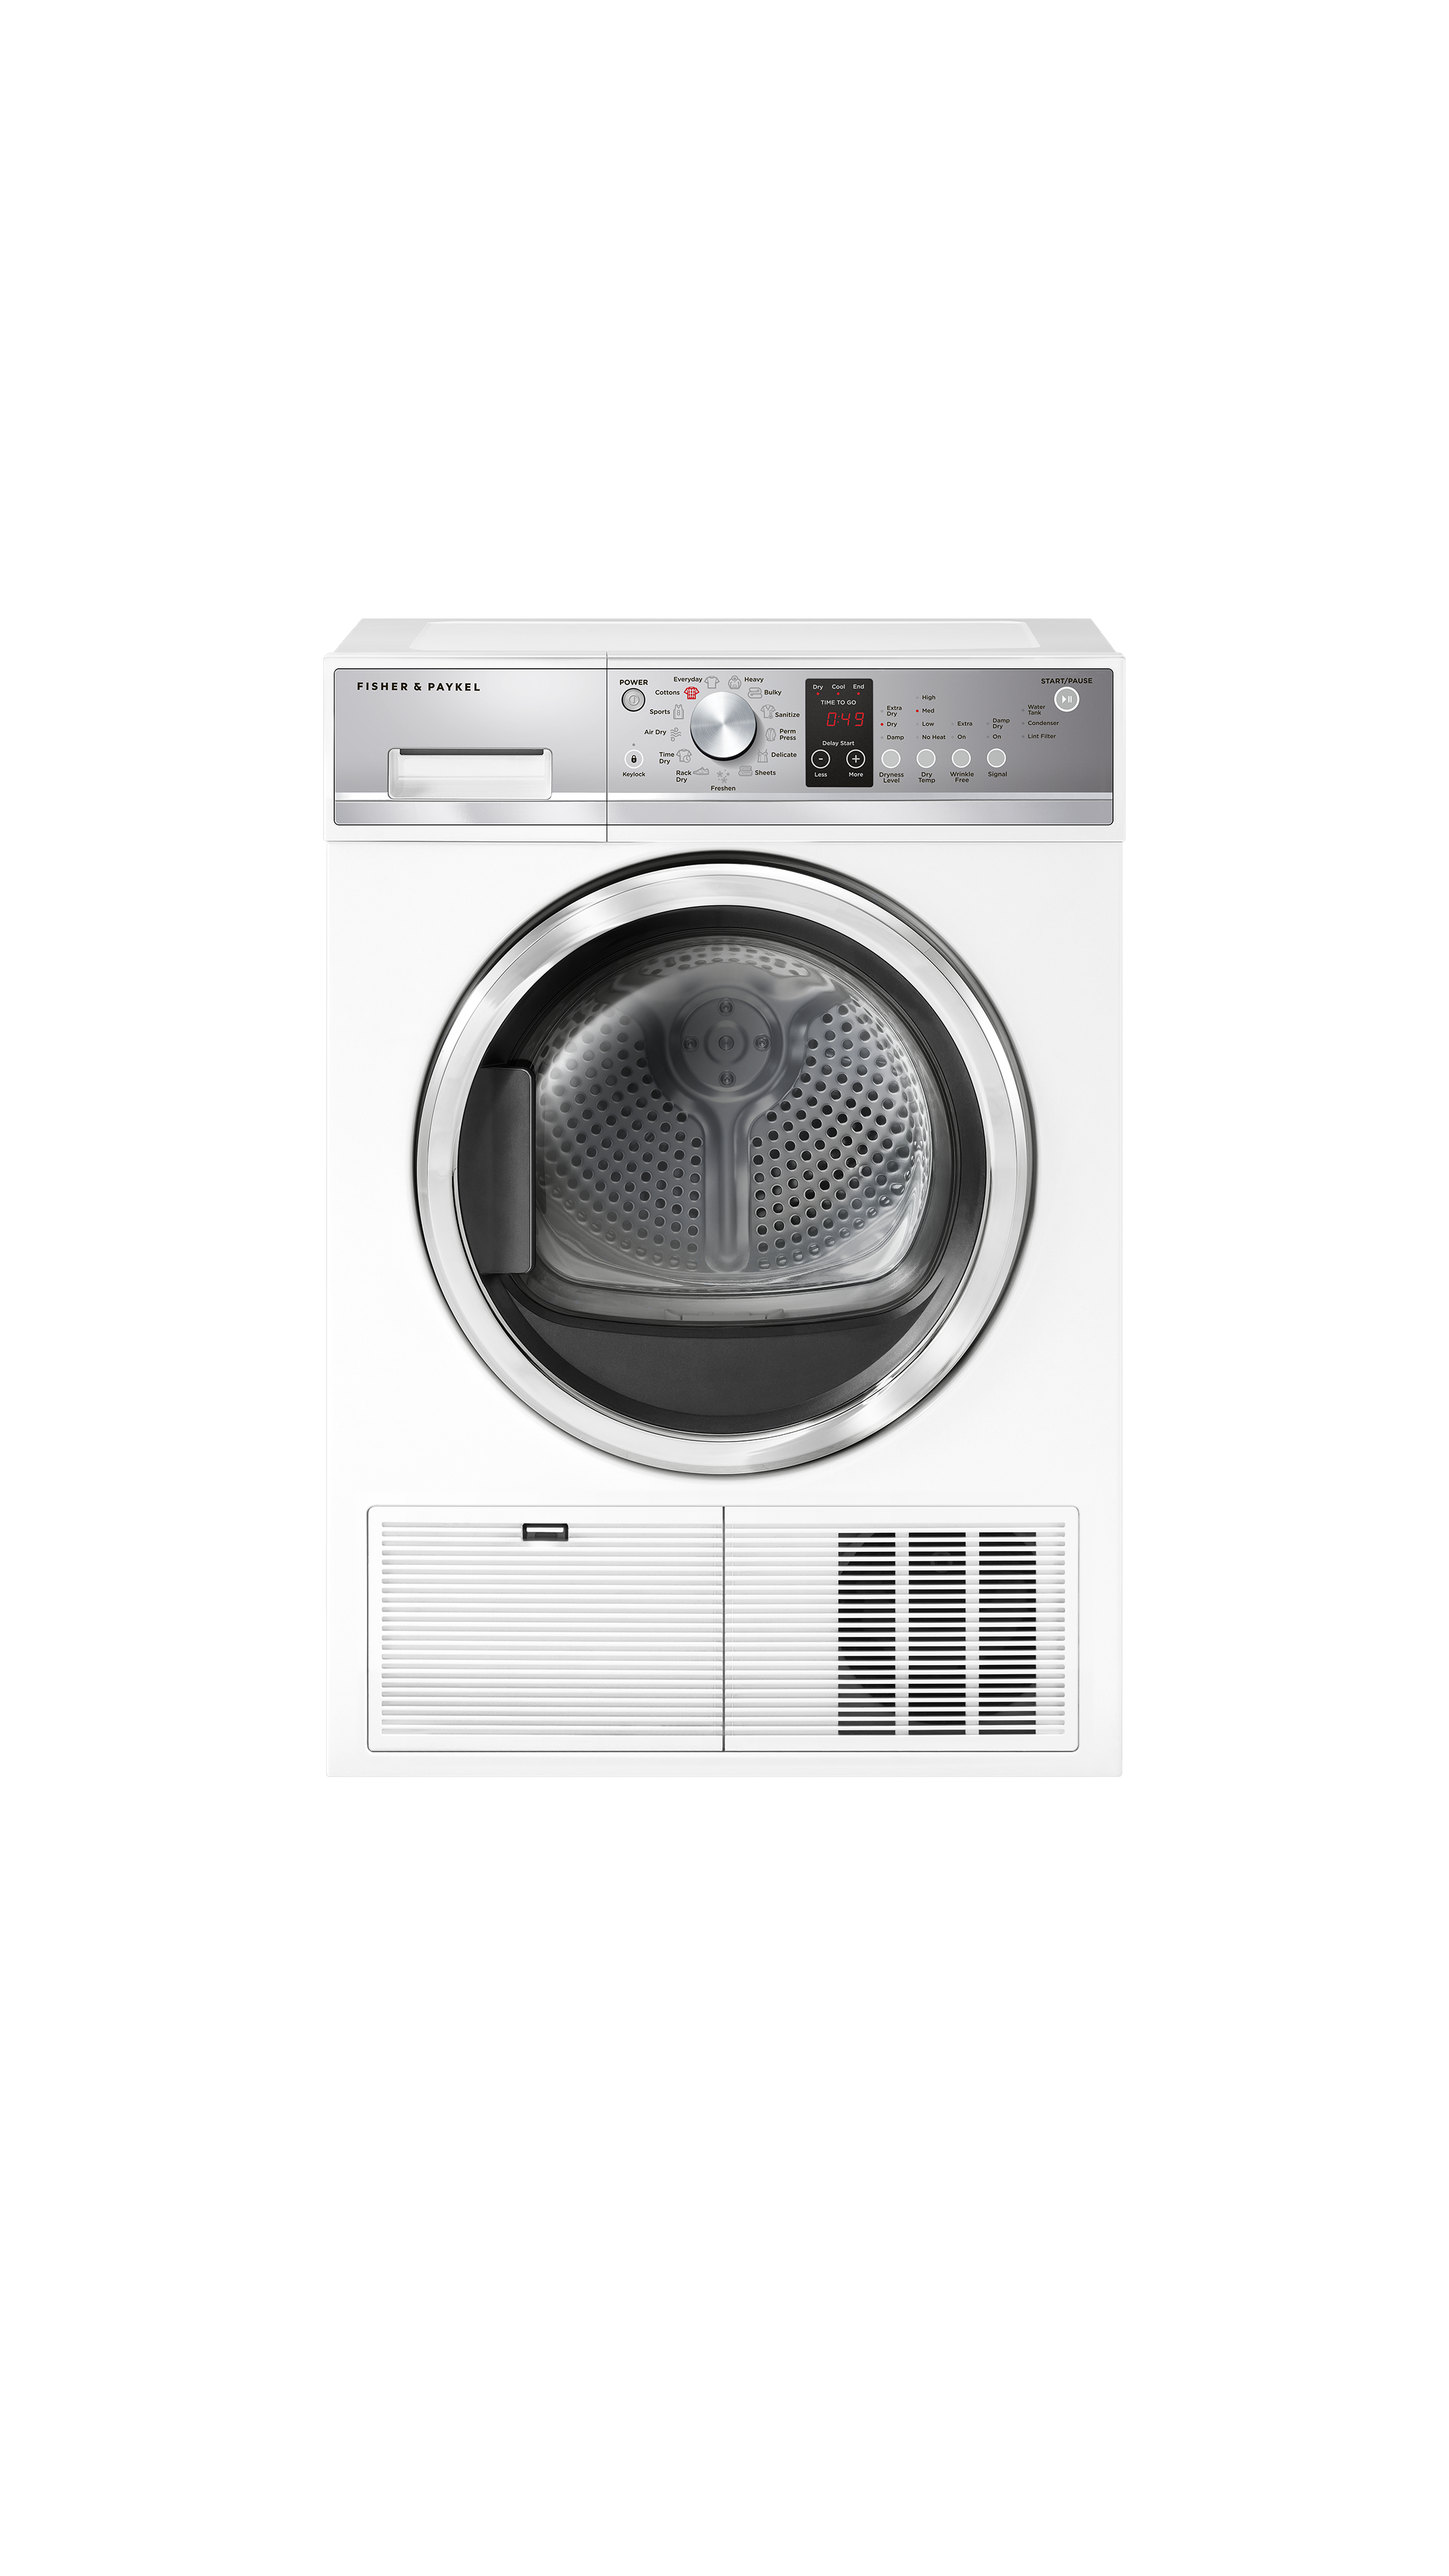 Model: DE4024P1 | Fisher and Paykel Condensing dryer, 4.0 cu ft, Autosensing